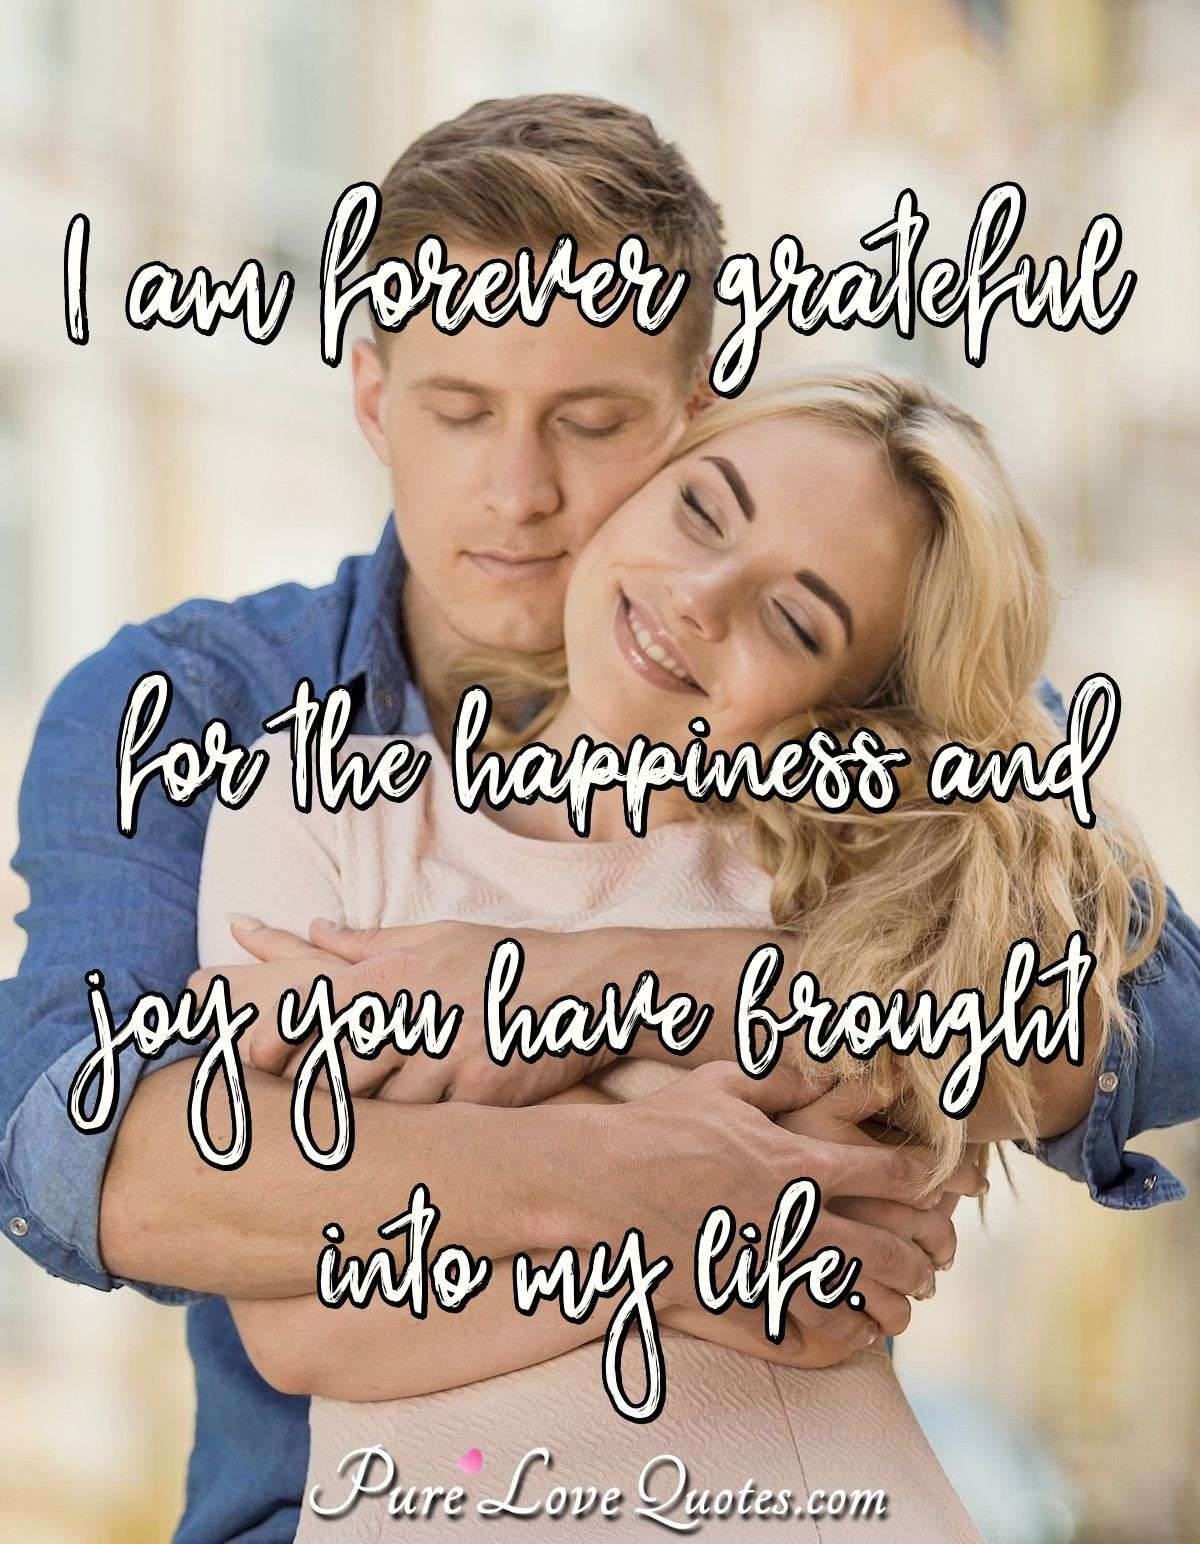 I am forever grateful for the happiness and joy you have brought into my life. - PureLoveQuotes.com